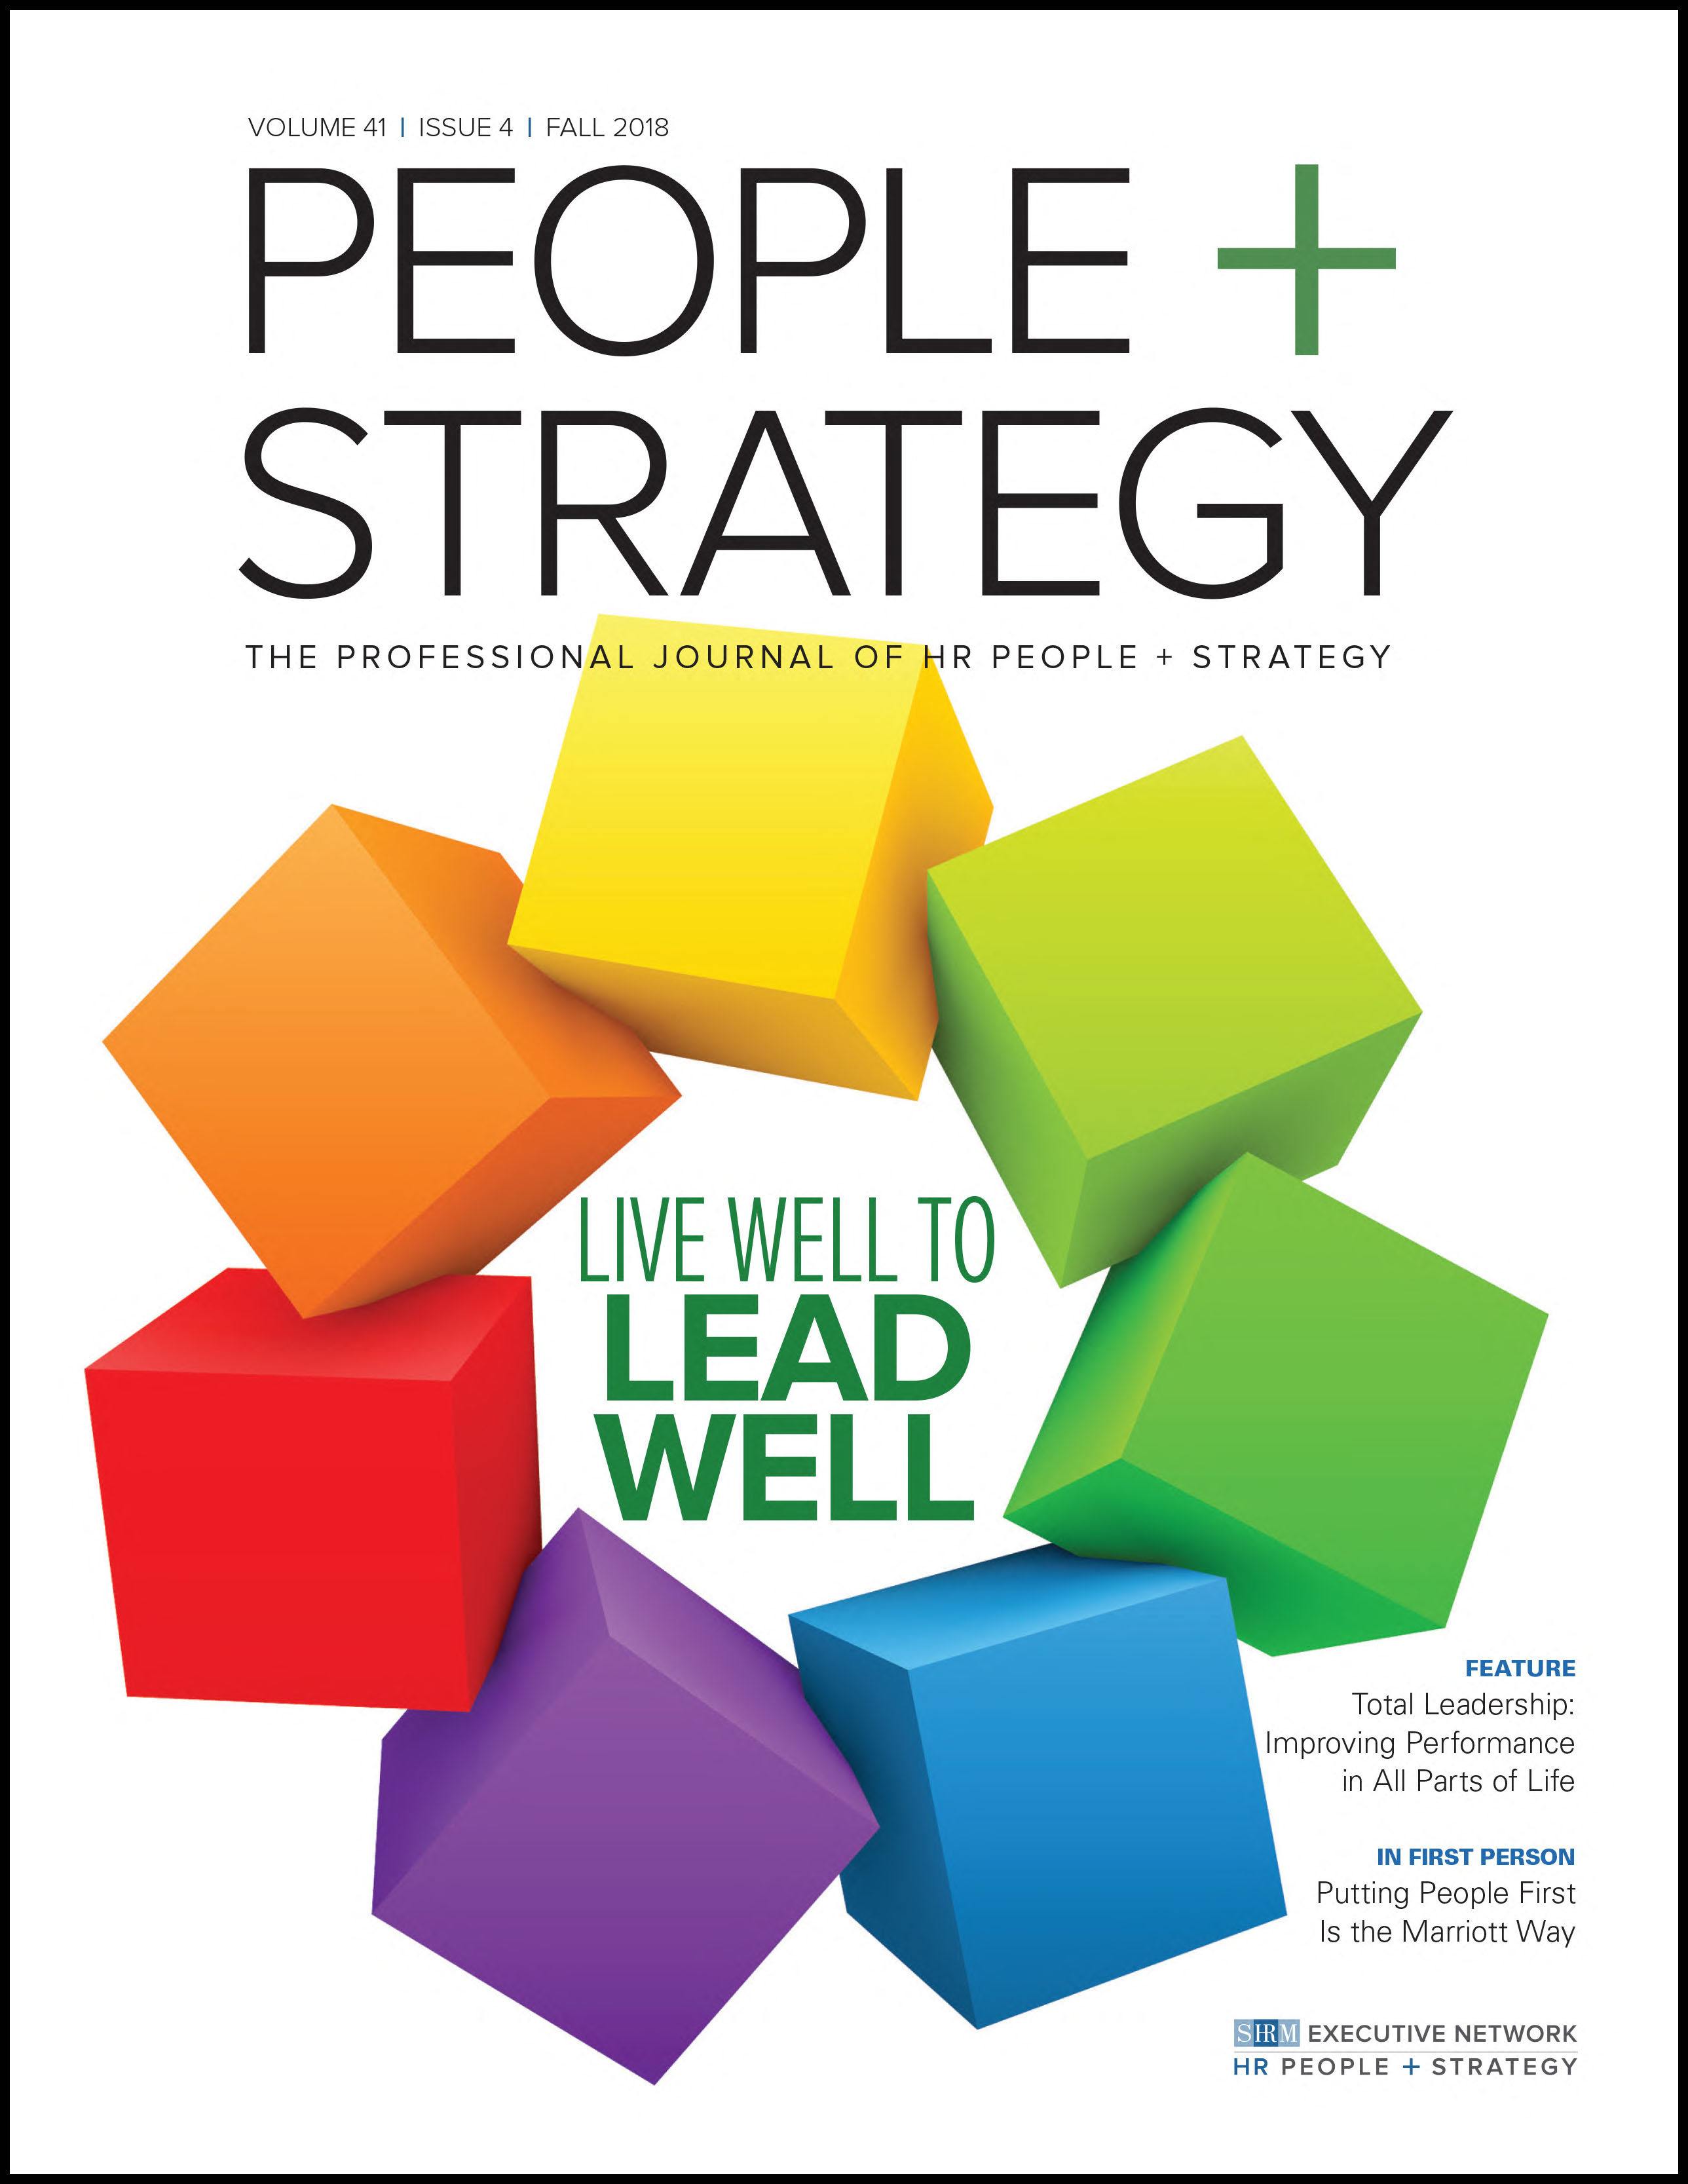 People and Strategy Journal